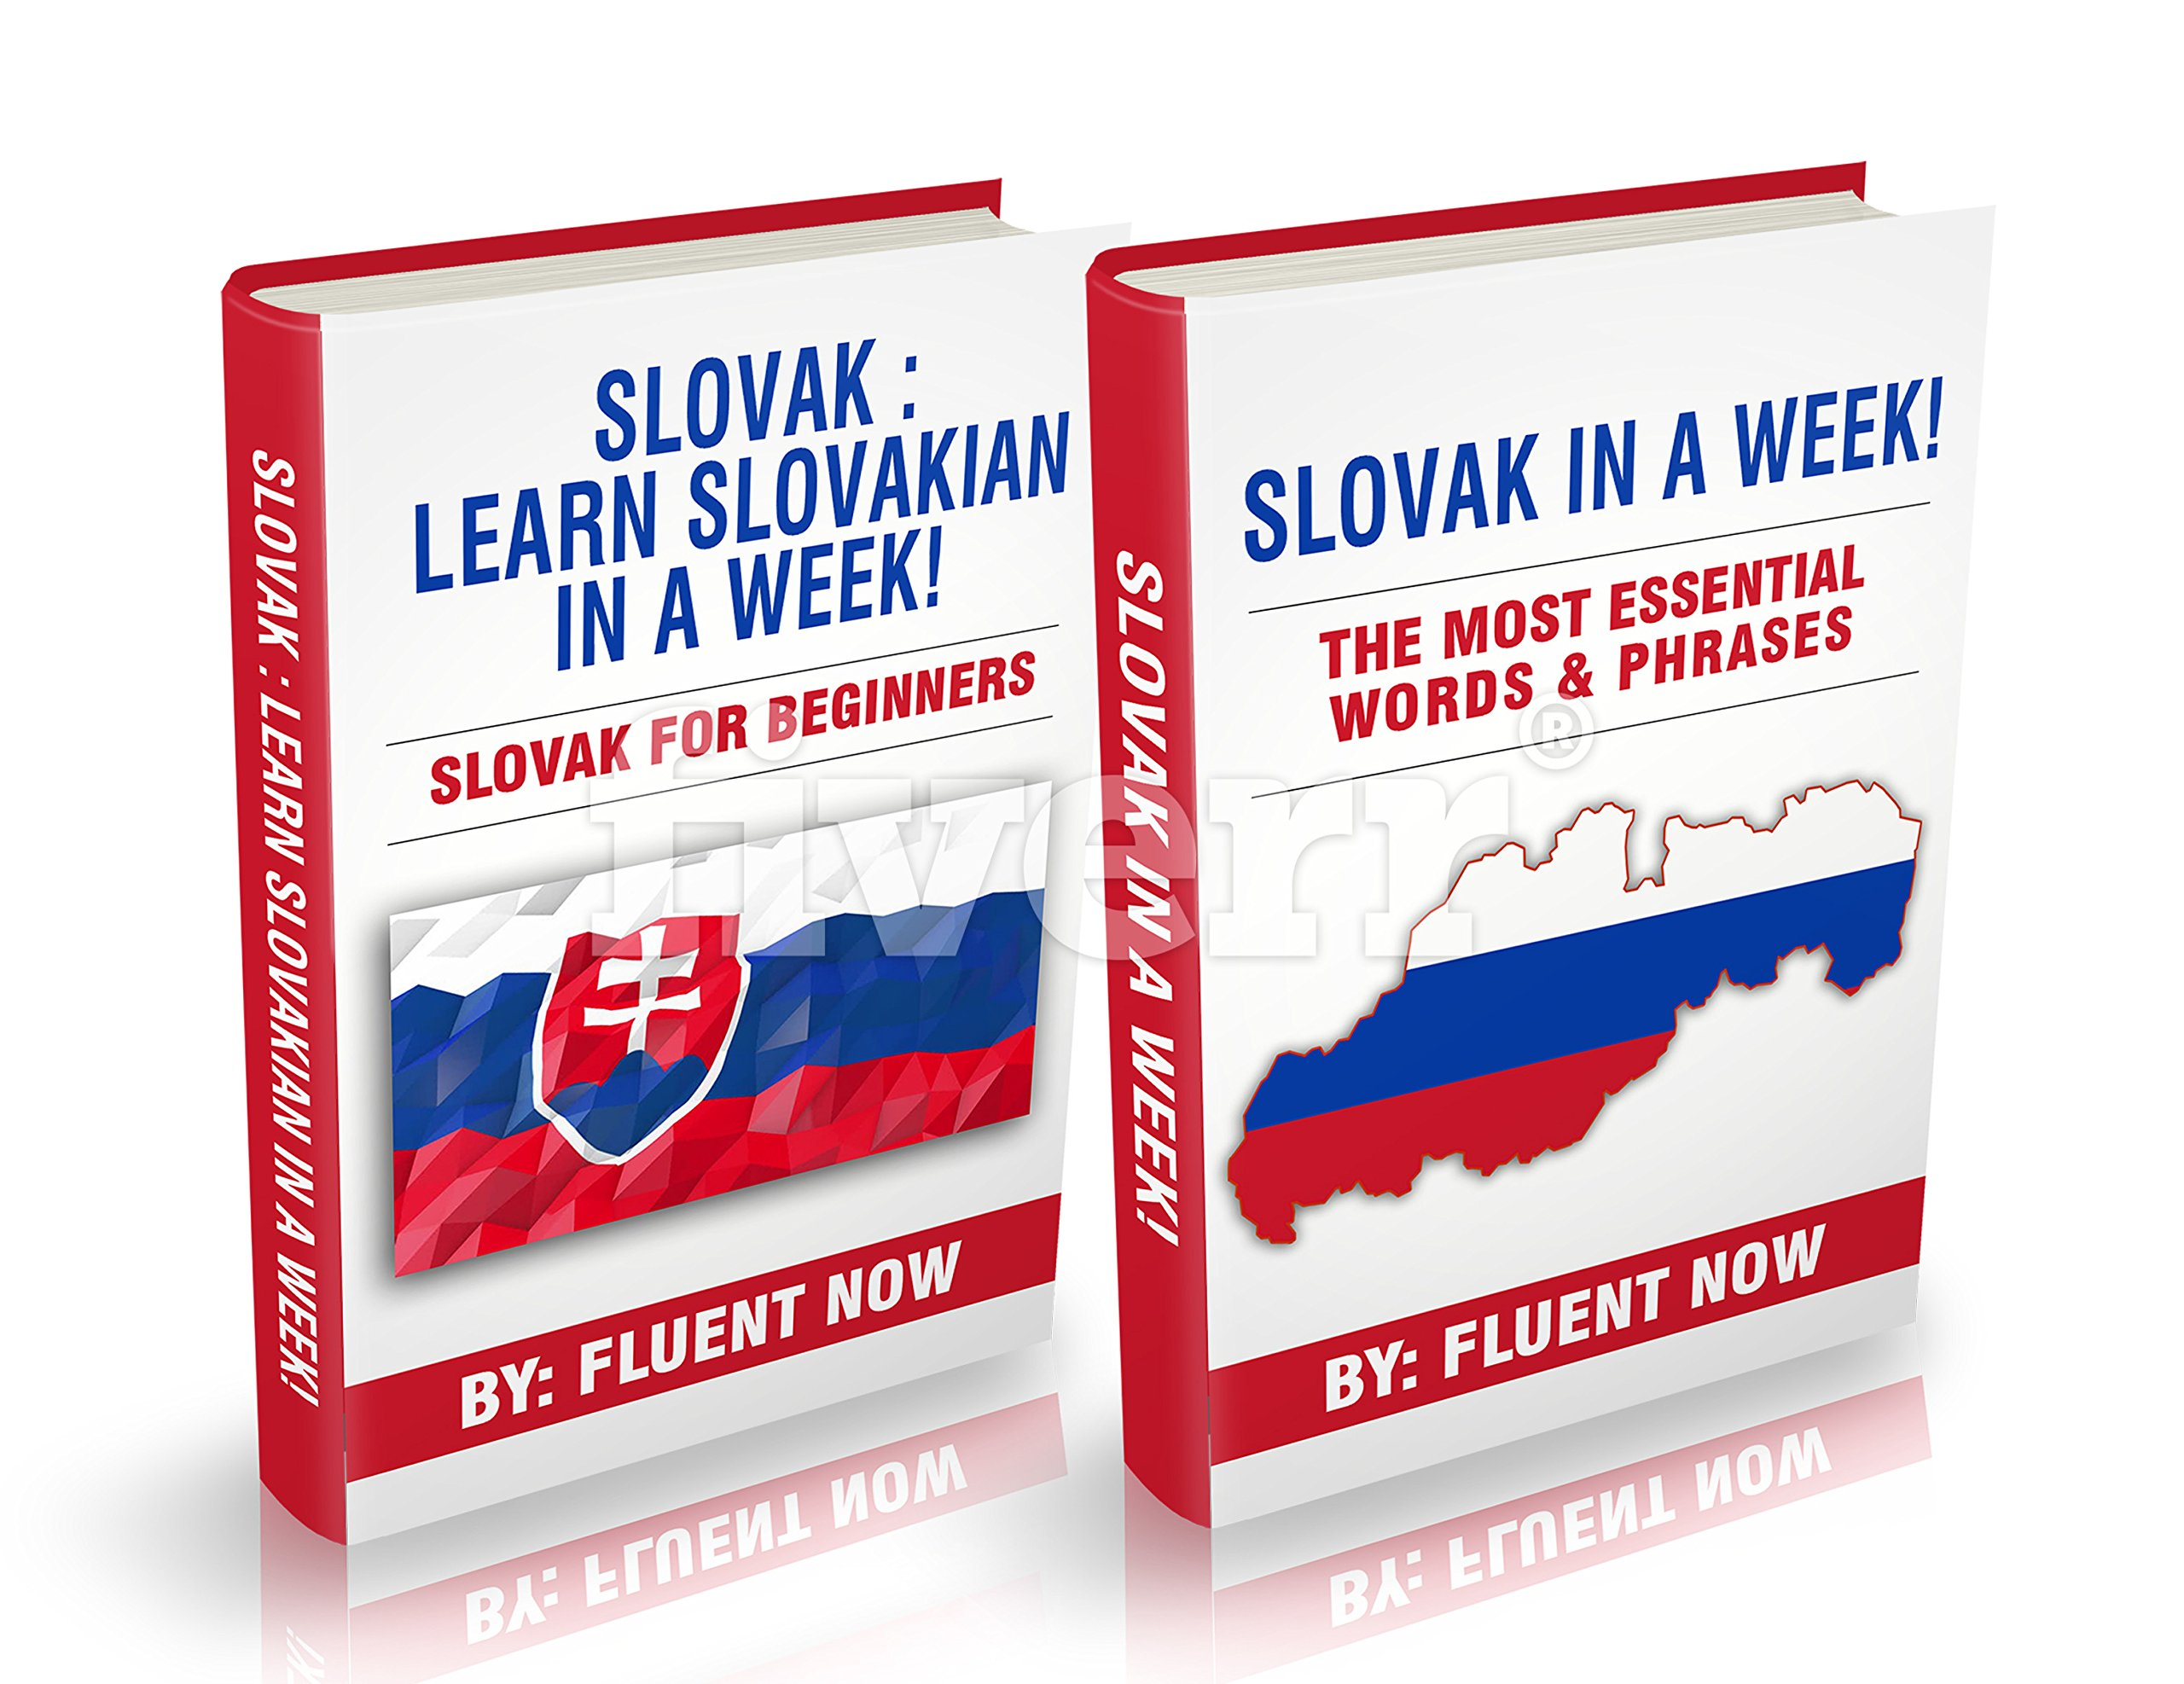 Slovak   Slovakian For Beginners 2 In 1 Book Bundle  The Ultimate Phrase Book And Beginner Guide To Learn Slovak  Slovakian Slovak Language Learn Slovakian   English Edition